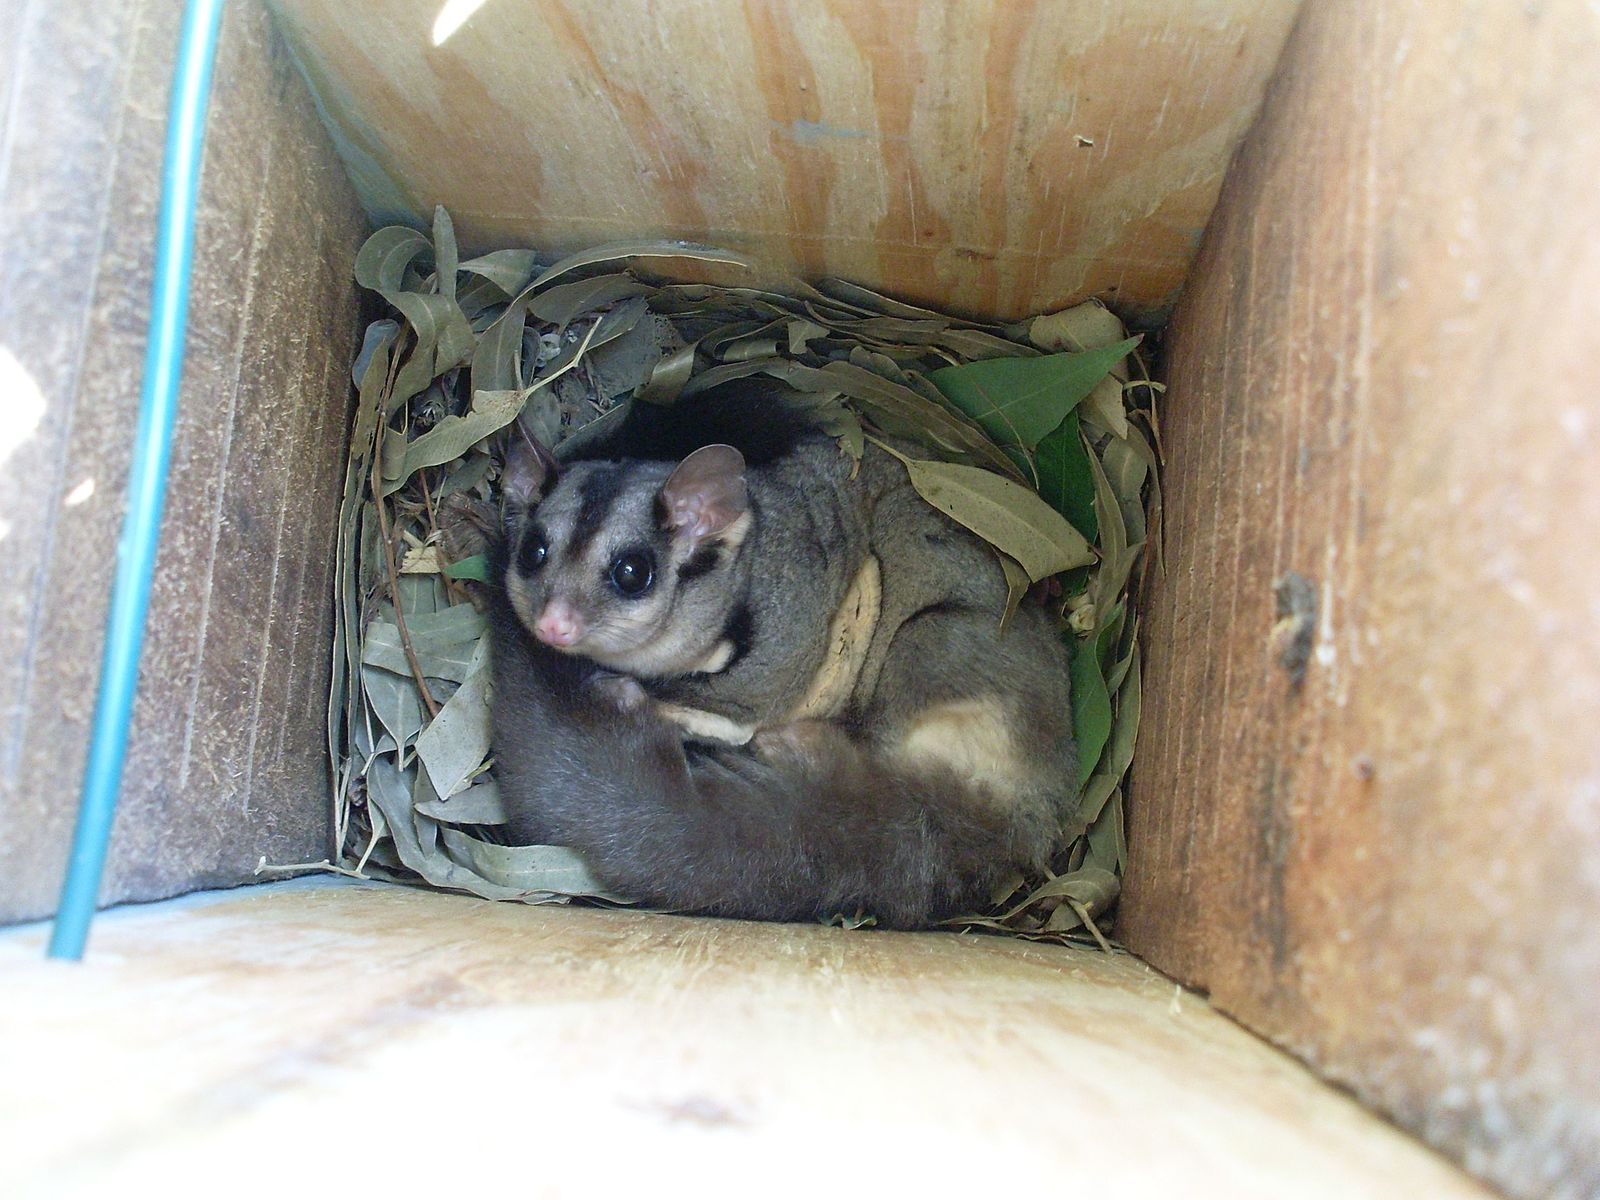 By Brisbane City Council (Squirrel Gliders in Nestbox  Uploaded by russavia) [CC BY 2.0 (http://creativecommons.org/licenses/by/2.0)], via Wikimedia Commons